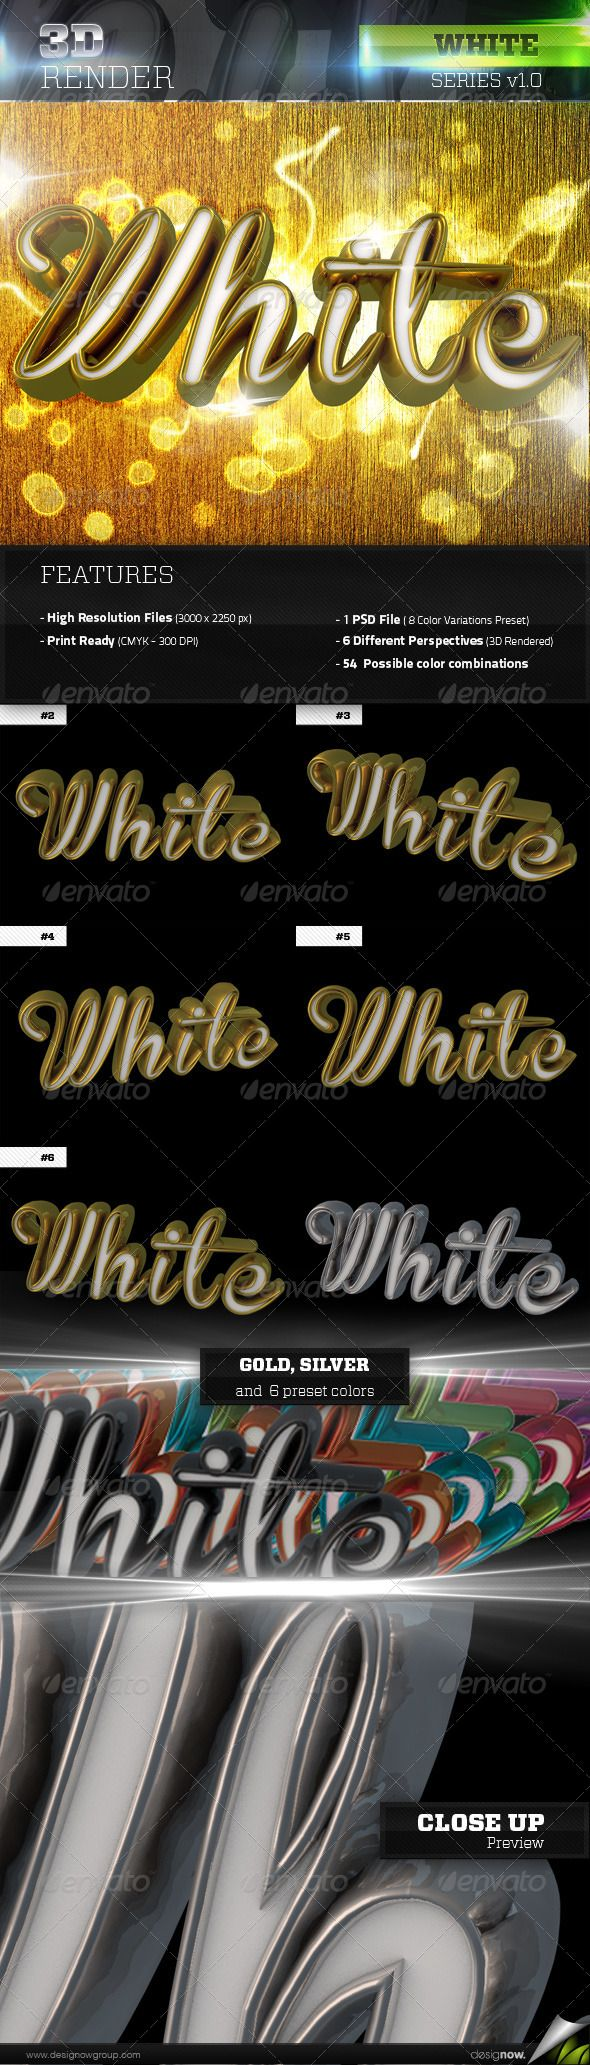 3D White Text  #GraphicRiver            3D Rendered White text with glossy textures. Great for party, festivals, concerts posters, flyers, invitations and other related events. It comes with a PSD file that includes 6 different perspectives, gold and silver texture; a preset of 6 color variations, with alpha channel ready to print or publish.      Easy to edit with highly organized layers.    Size 3000×2250 px;  DPI 300;  Color Profile CMYK;  Color variations gold, silver, black, orange…